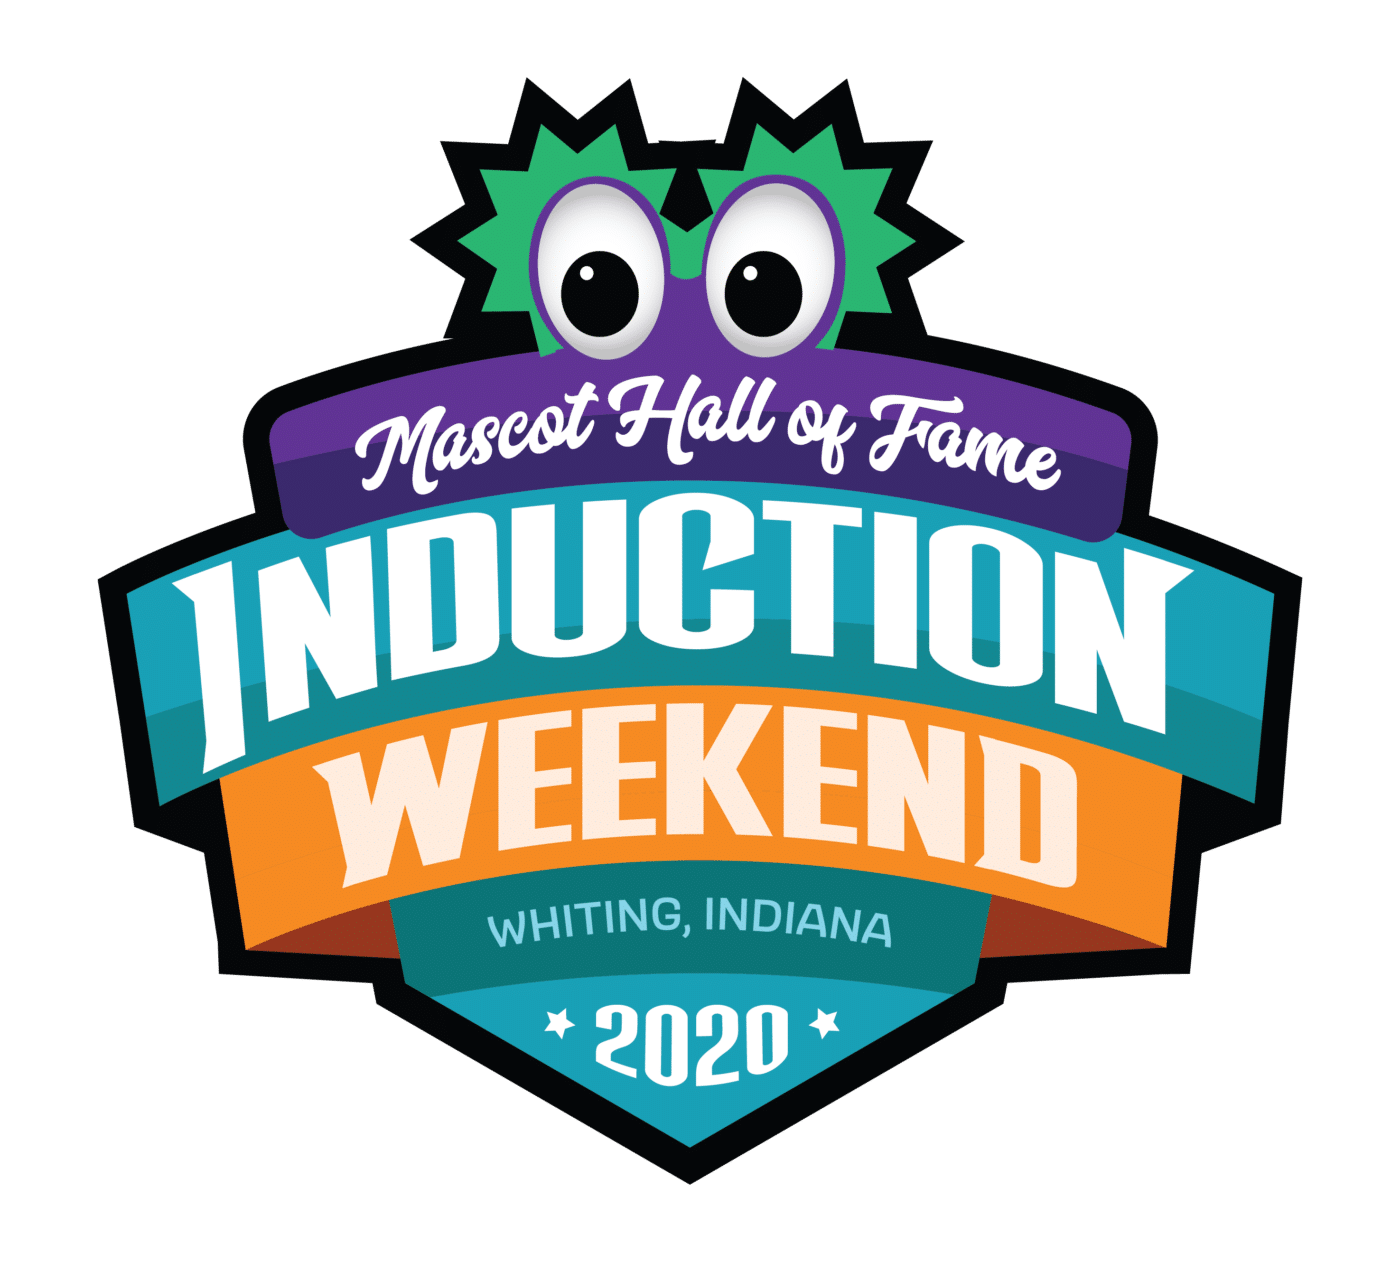 Induction Weekend 2020